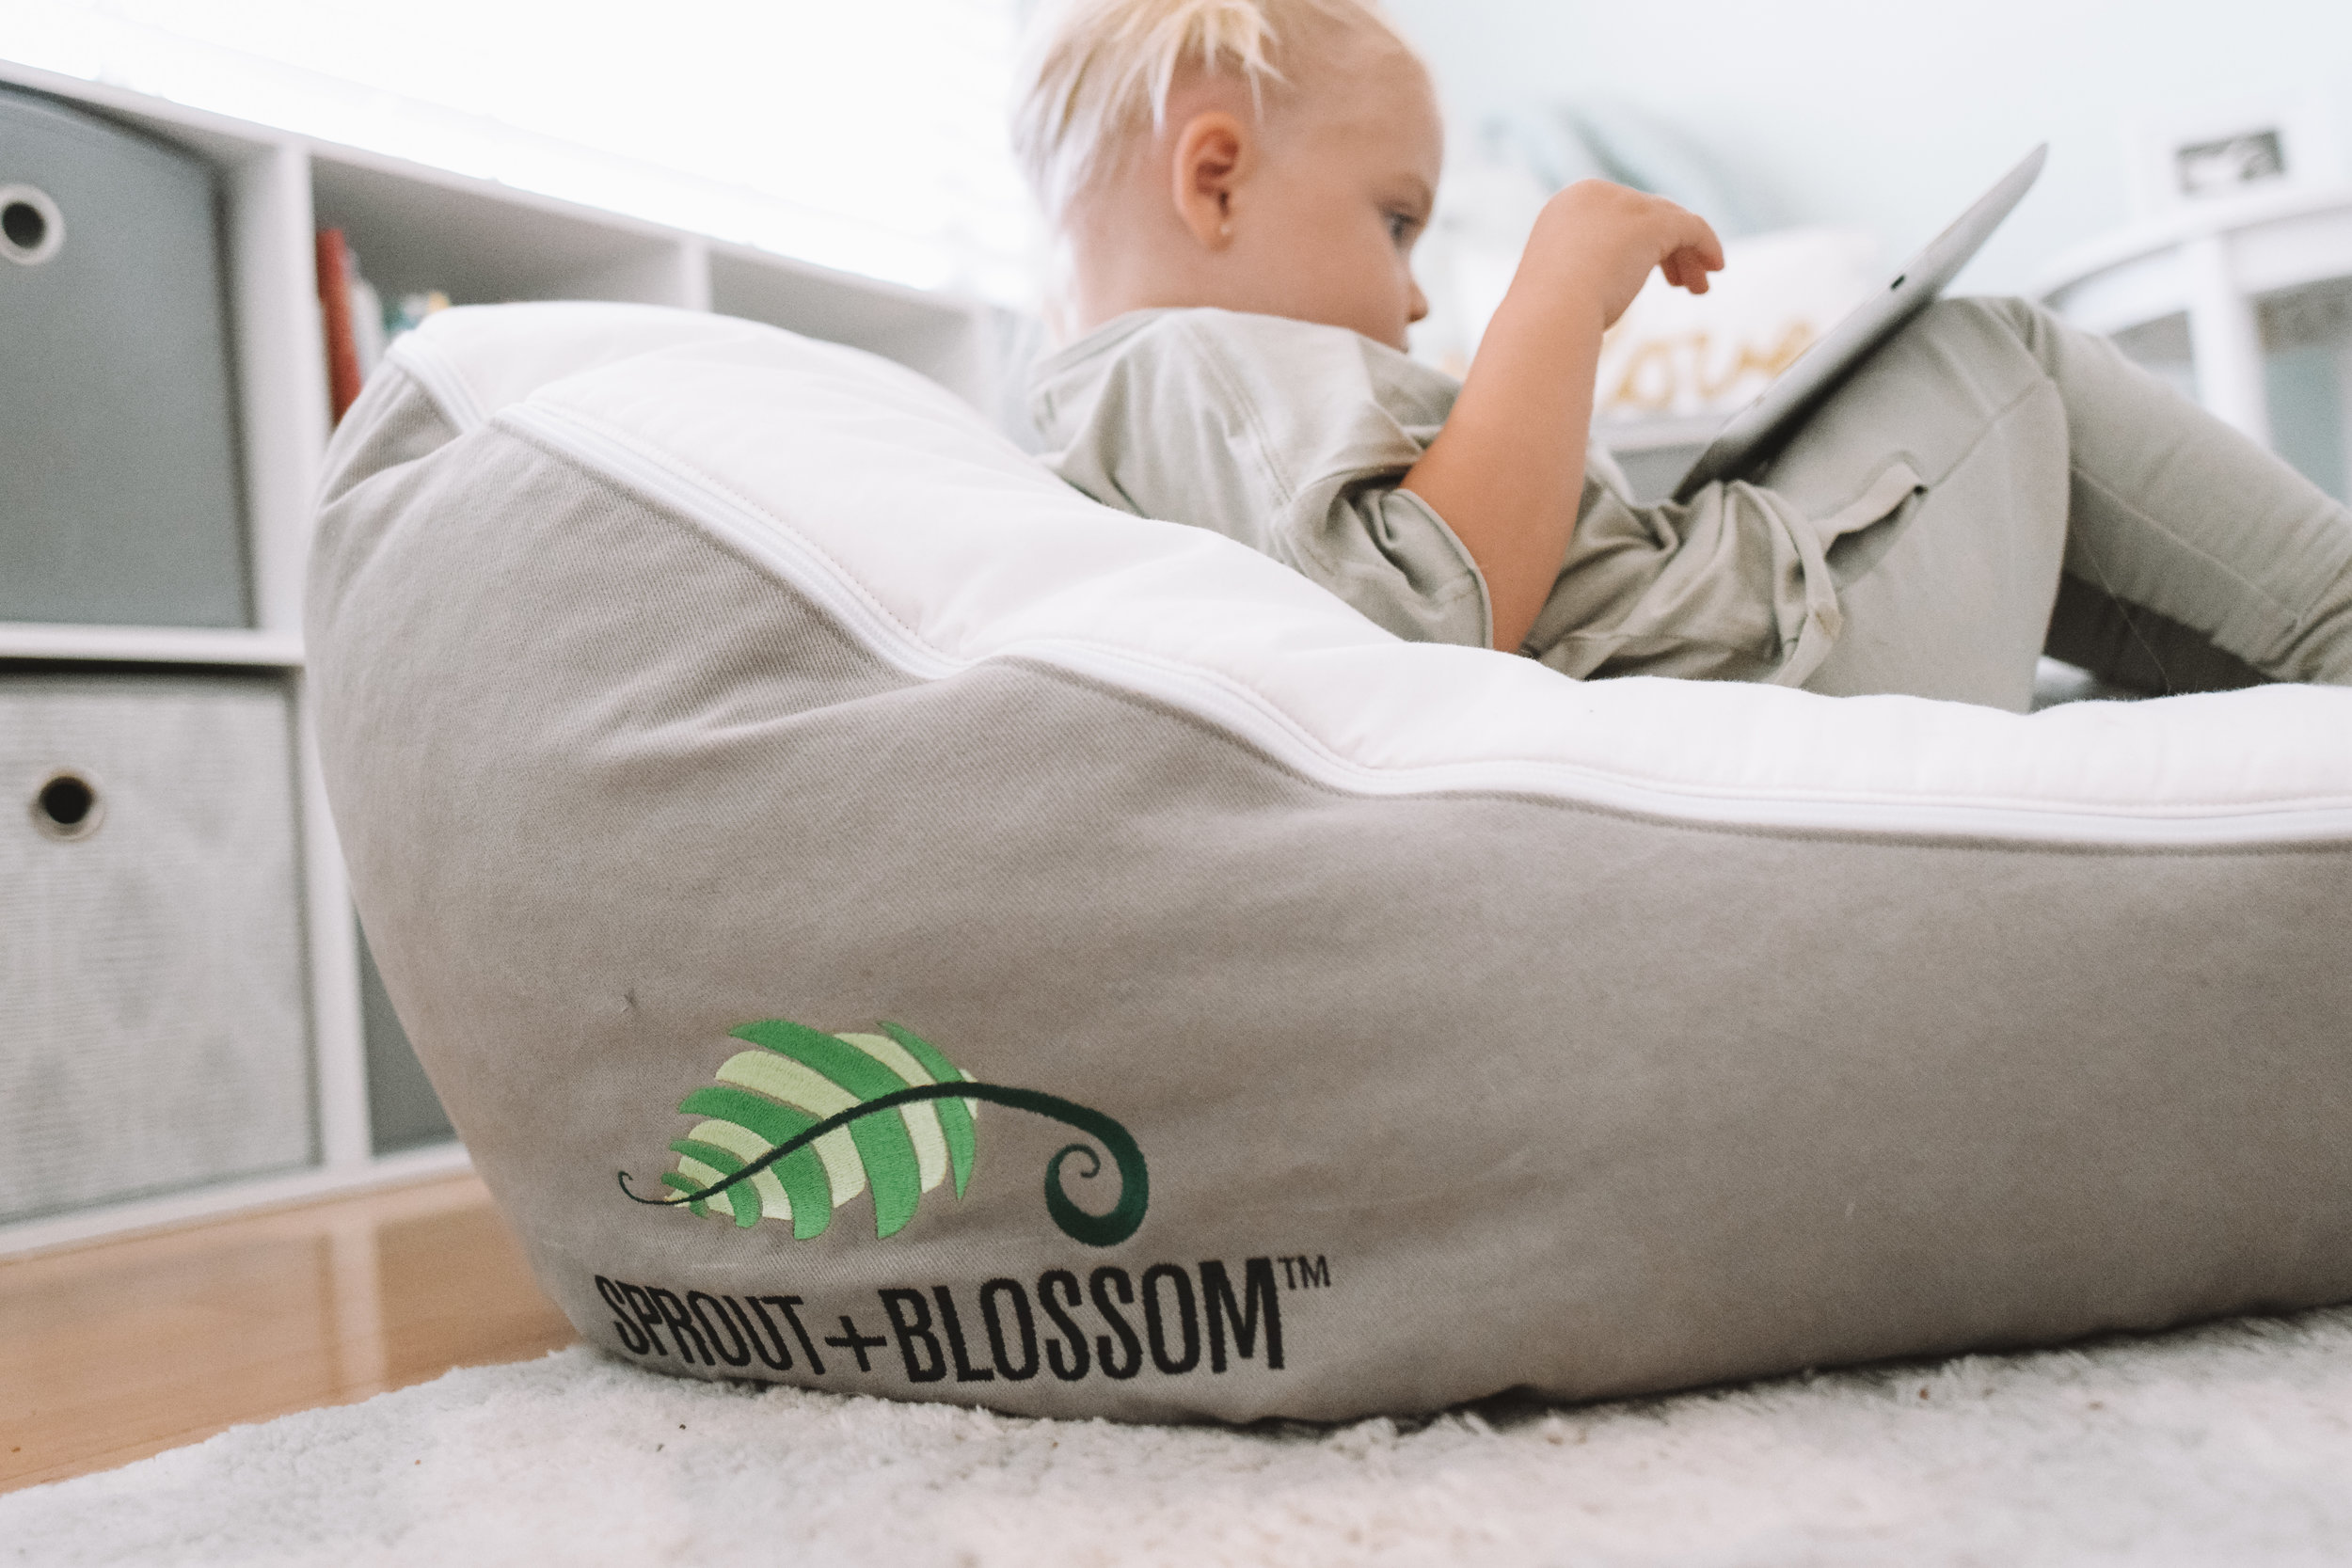 Baby-Toddler Lounger - Product for Babies with Reflux - Sprout Blossom -- The Overwhelmed Mommy Blogger